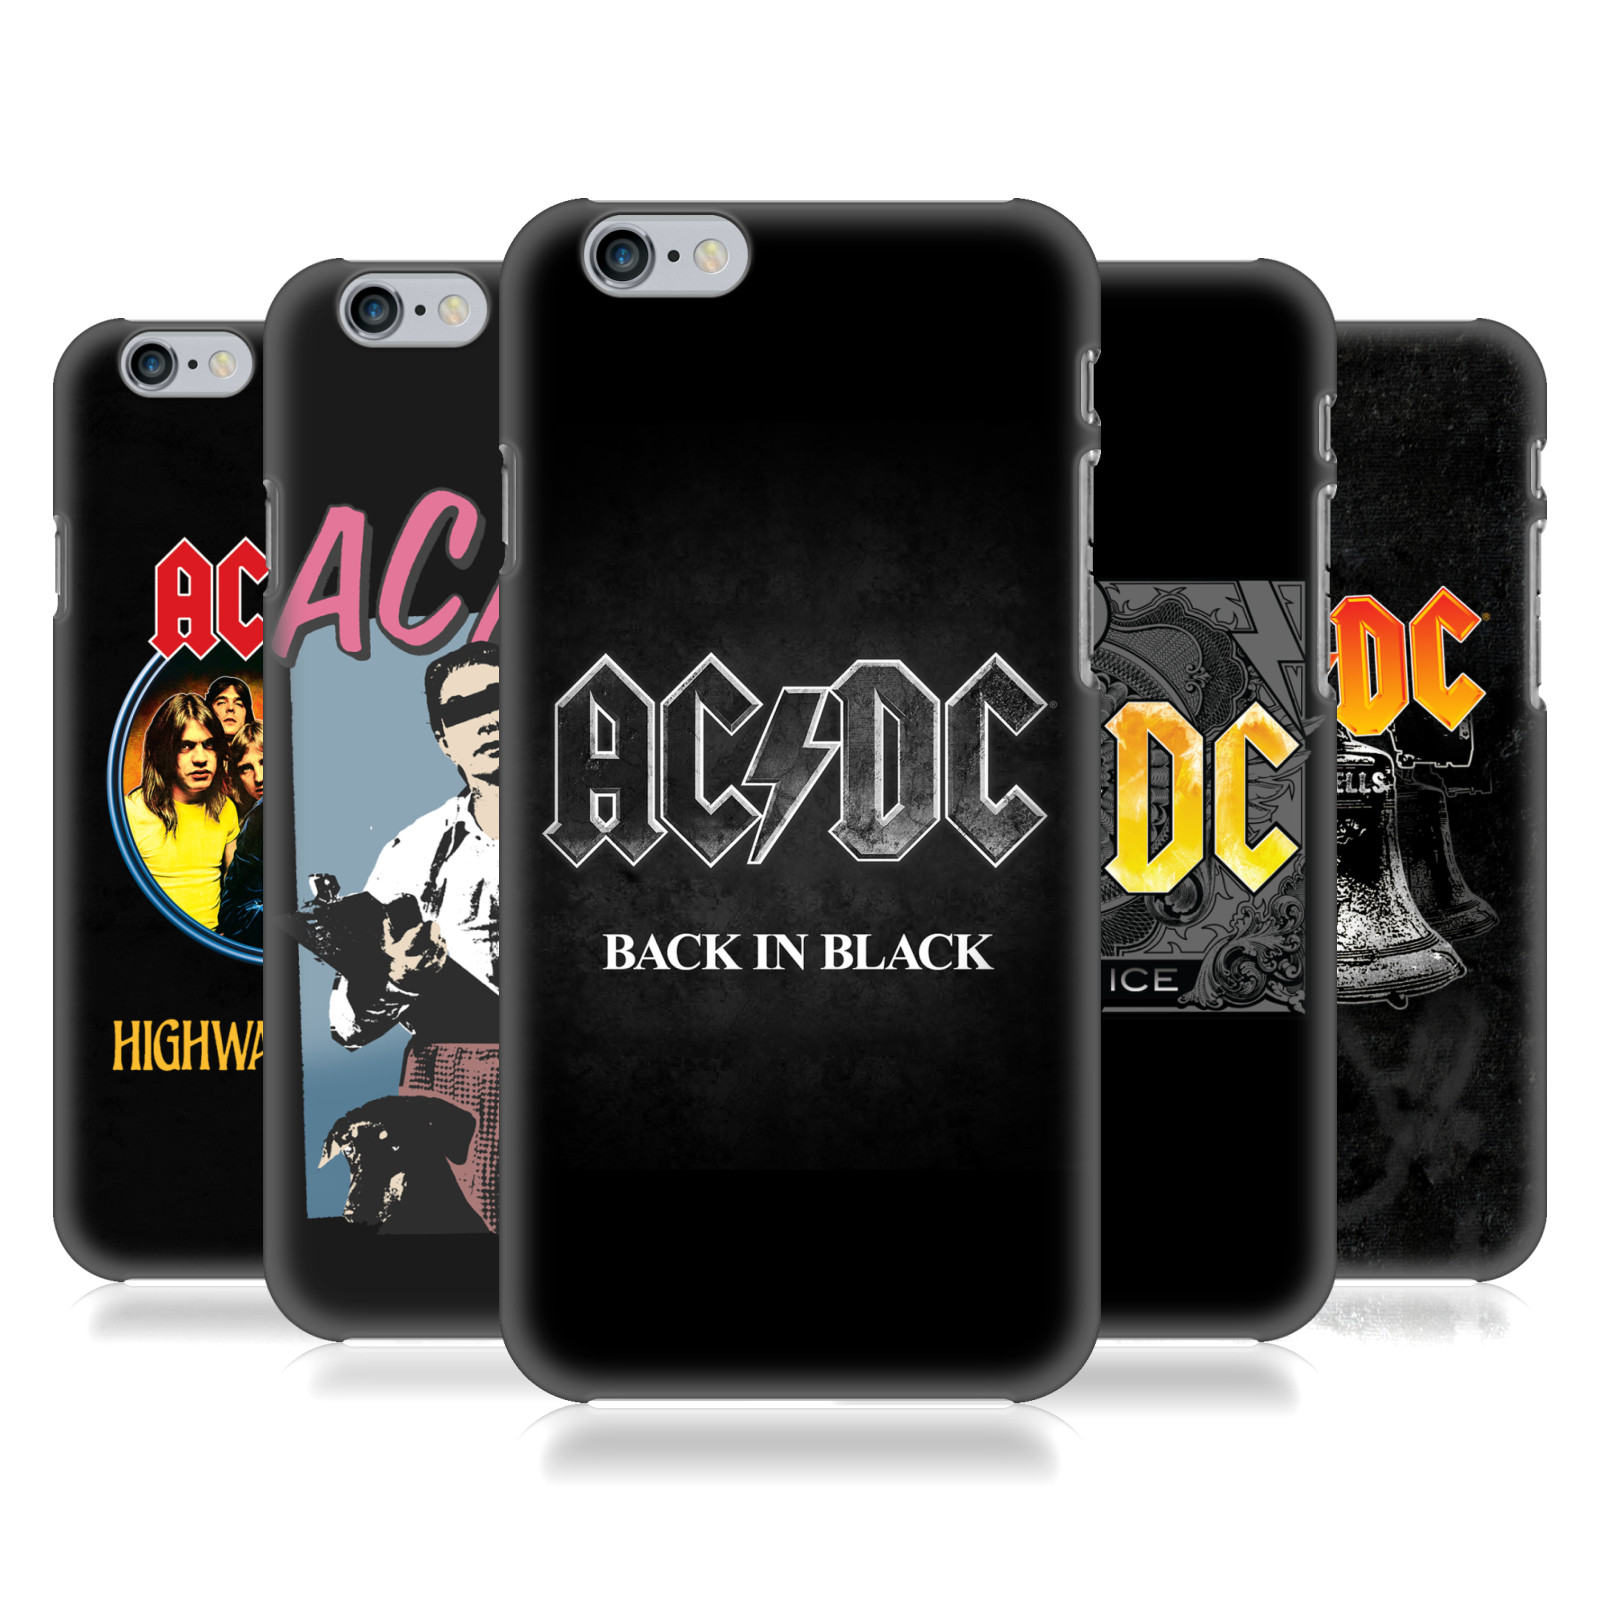 ACDC Song Titles